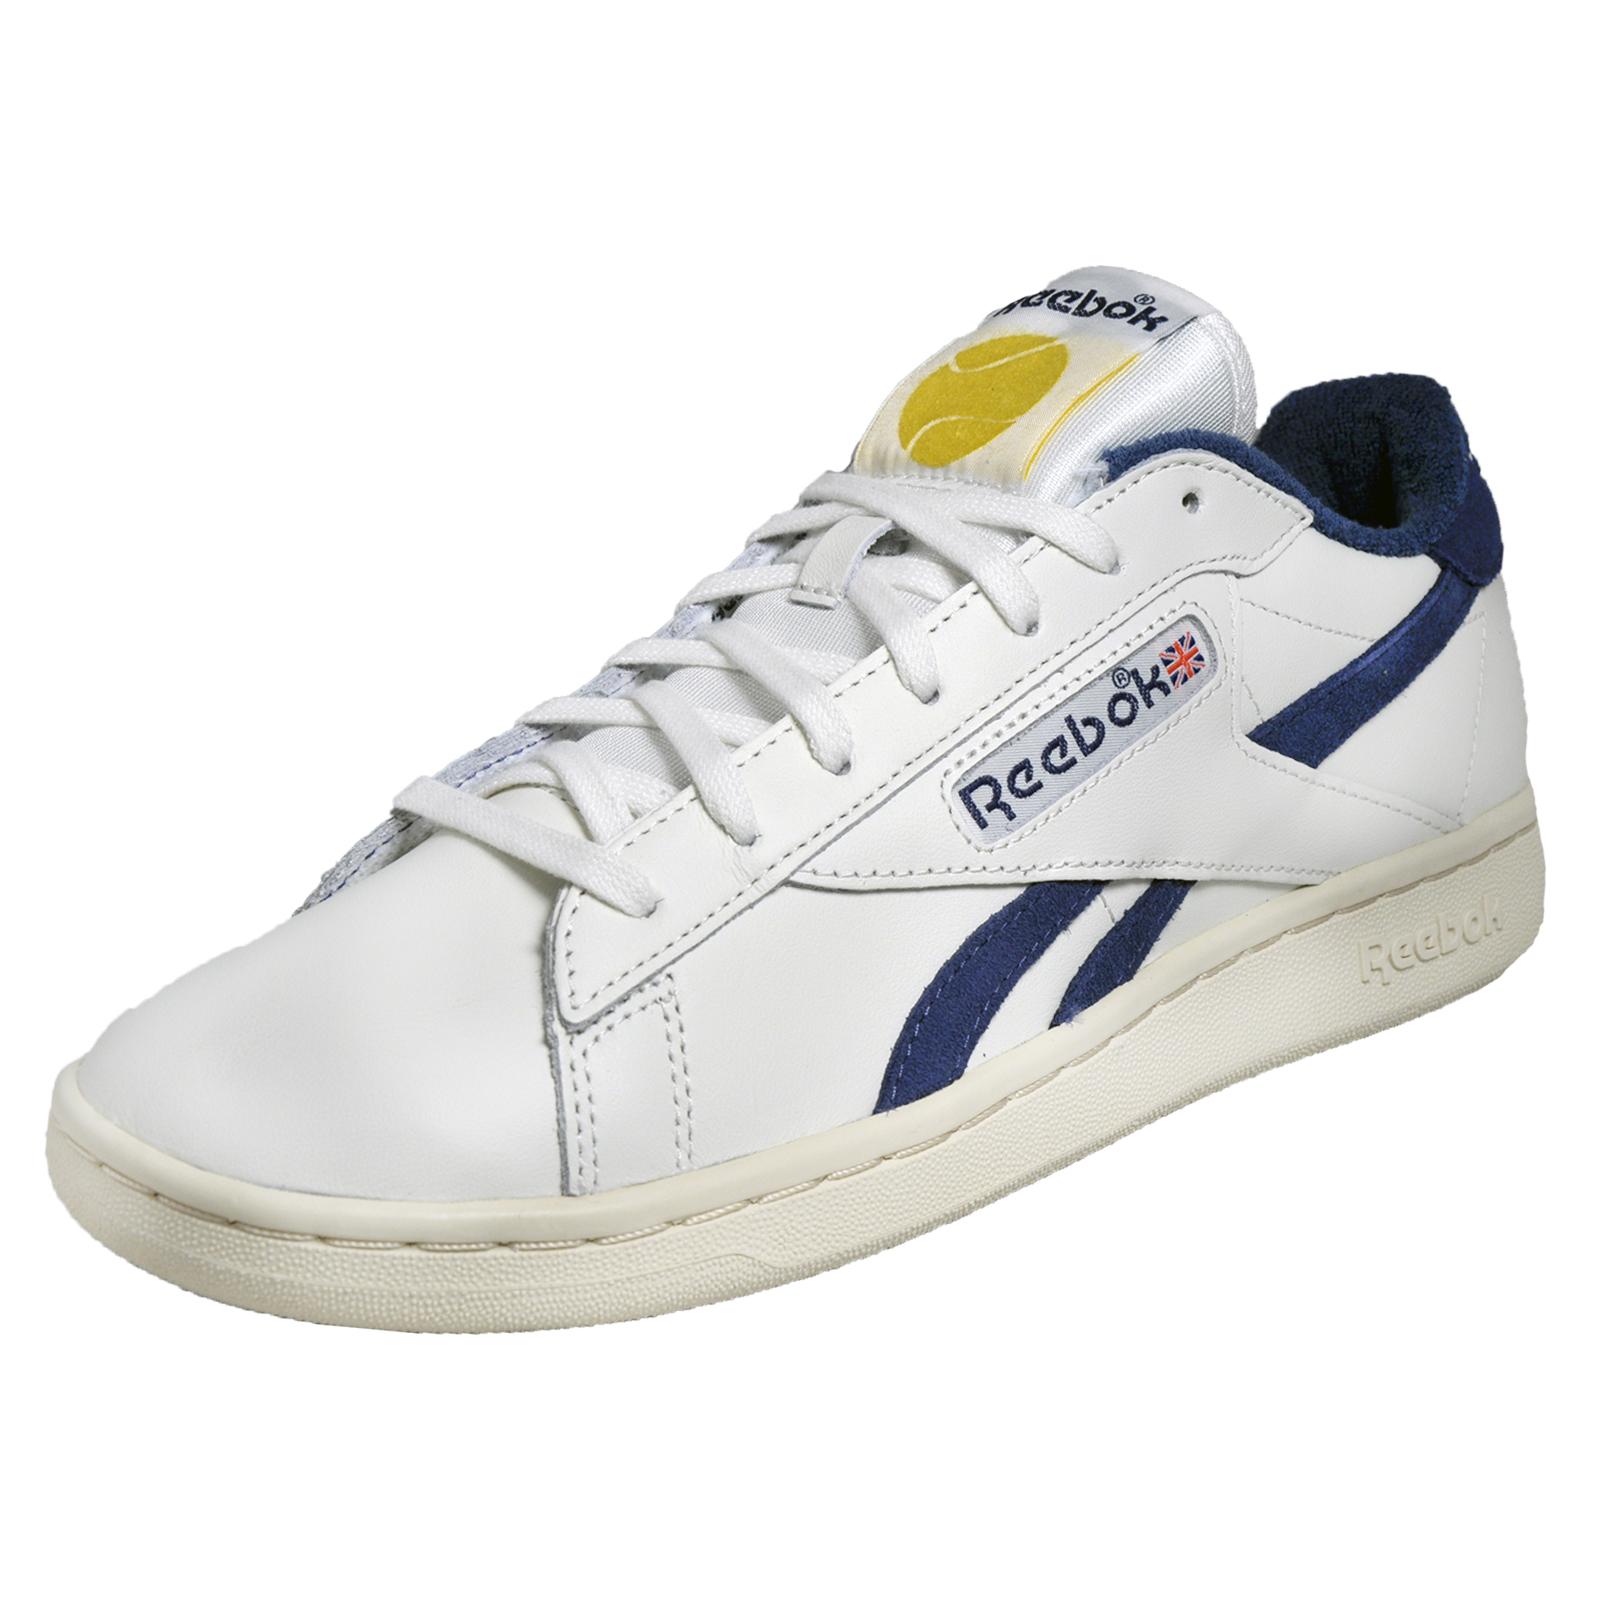 reebok classic npc uk tb mens vintage heritage leather retro trainers chalk whit ebay. Black Bedroom Furniture Sets. Home Design Ideas